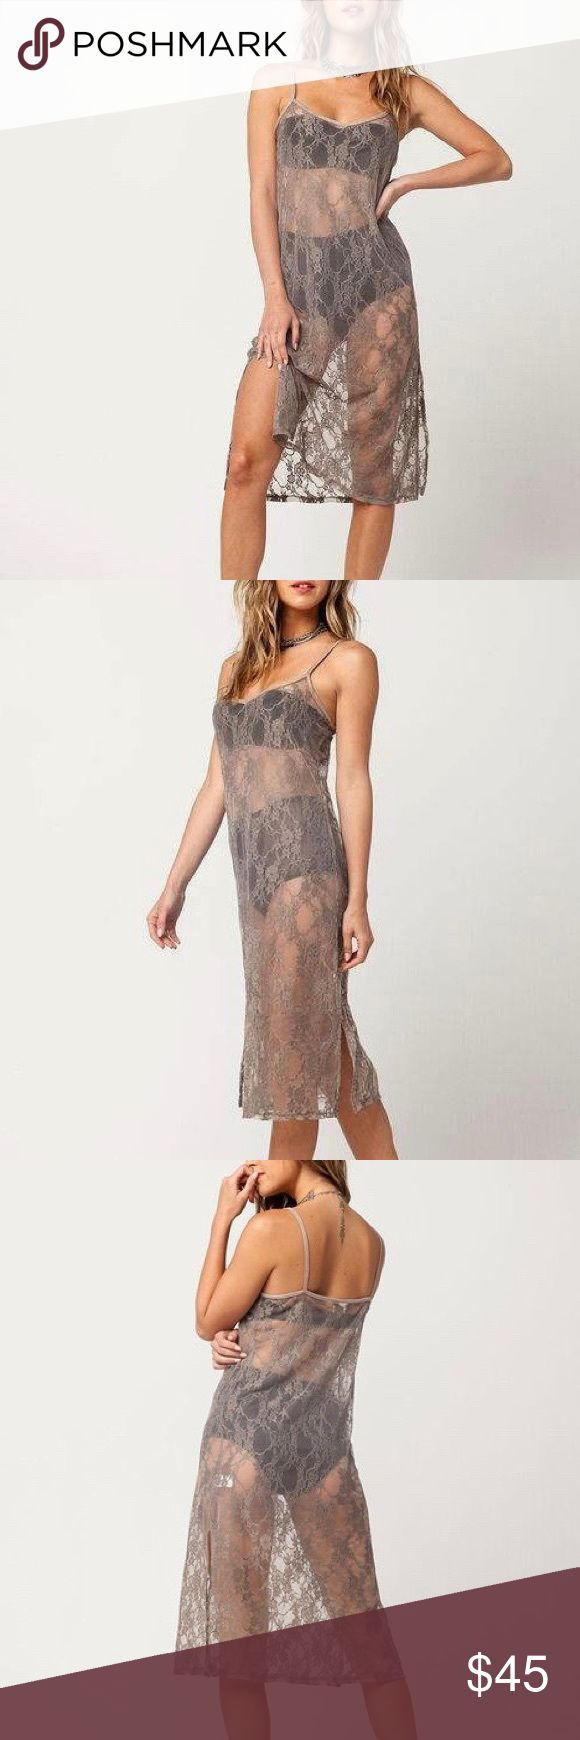 ❤️ SEXY TAN LACE DRESS Size XS Sexy taupe lace dress Size S made by H.I.P Sheer. Dresses Midi